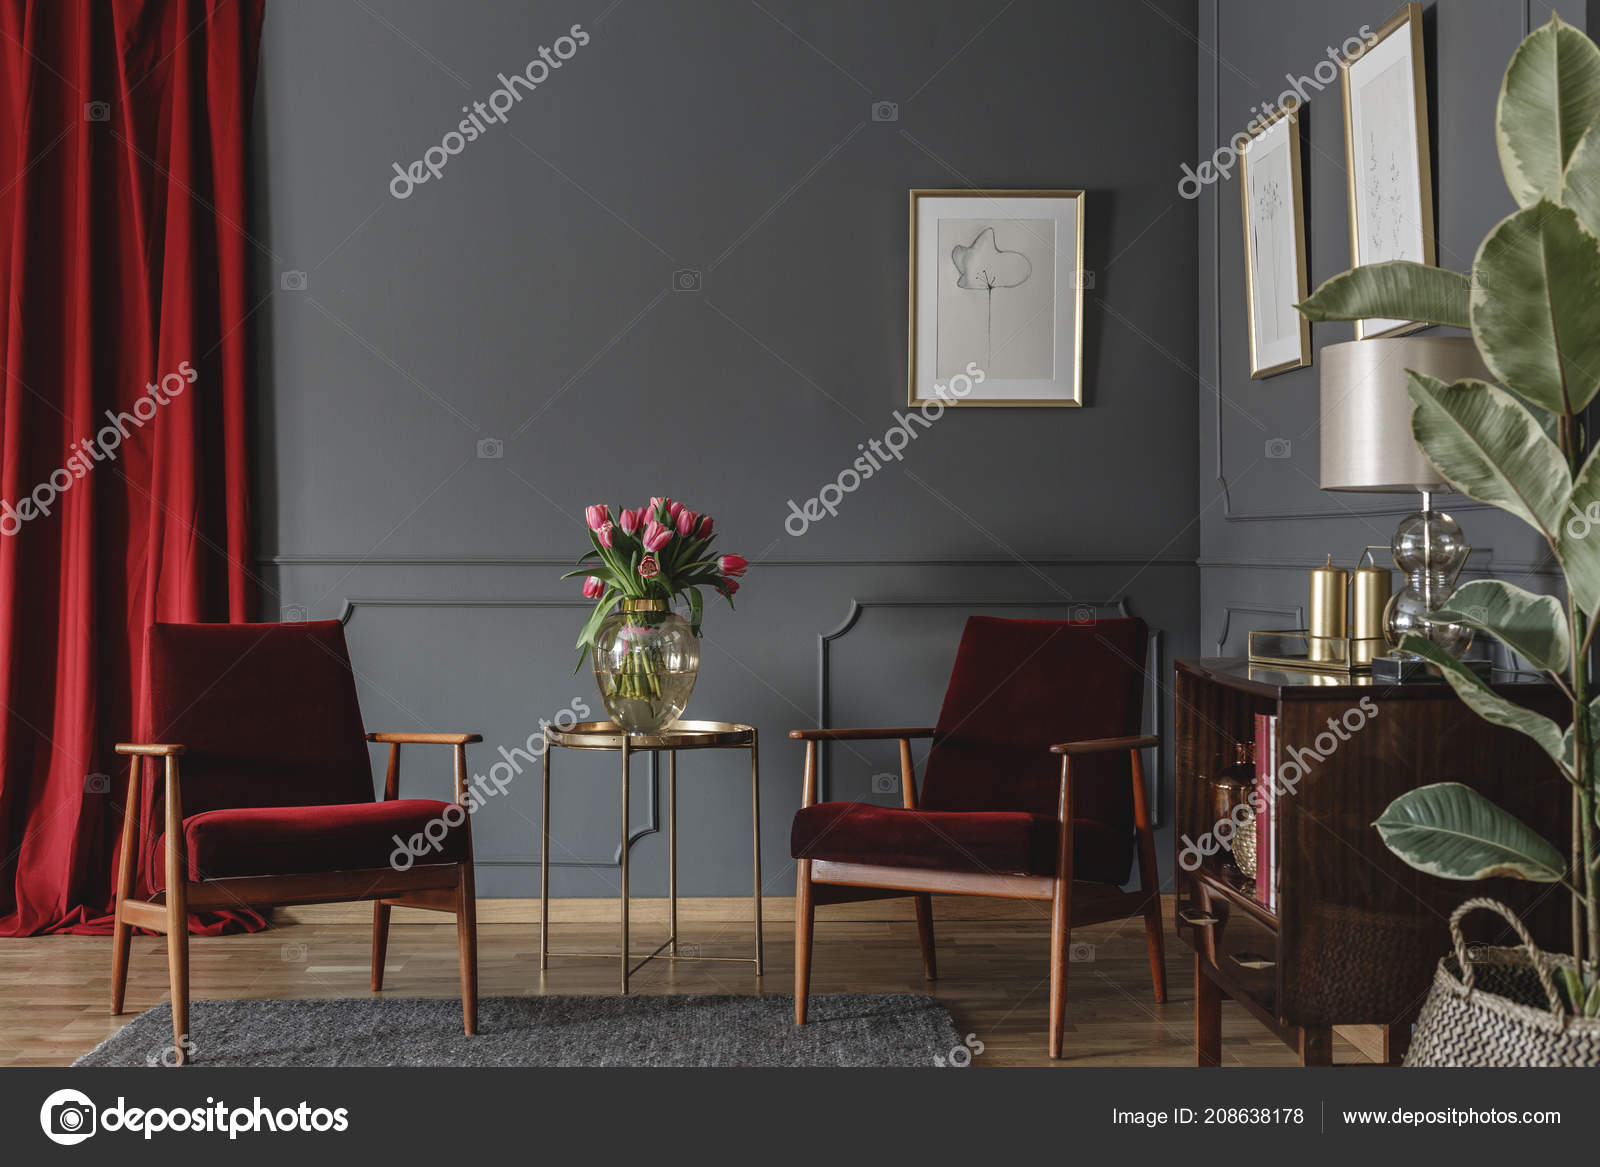 Burgundy And Grey Living Room.Two Burgundy Armchairs Placed Grey Living Room Interior Red